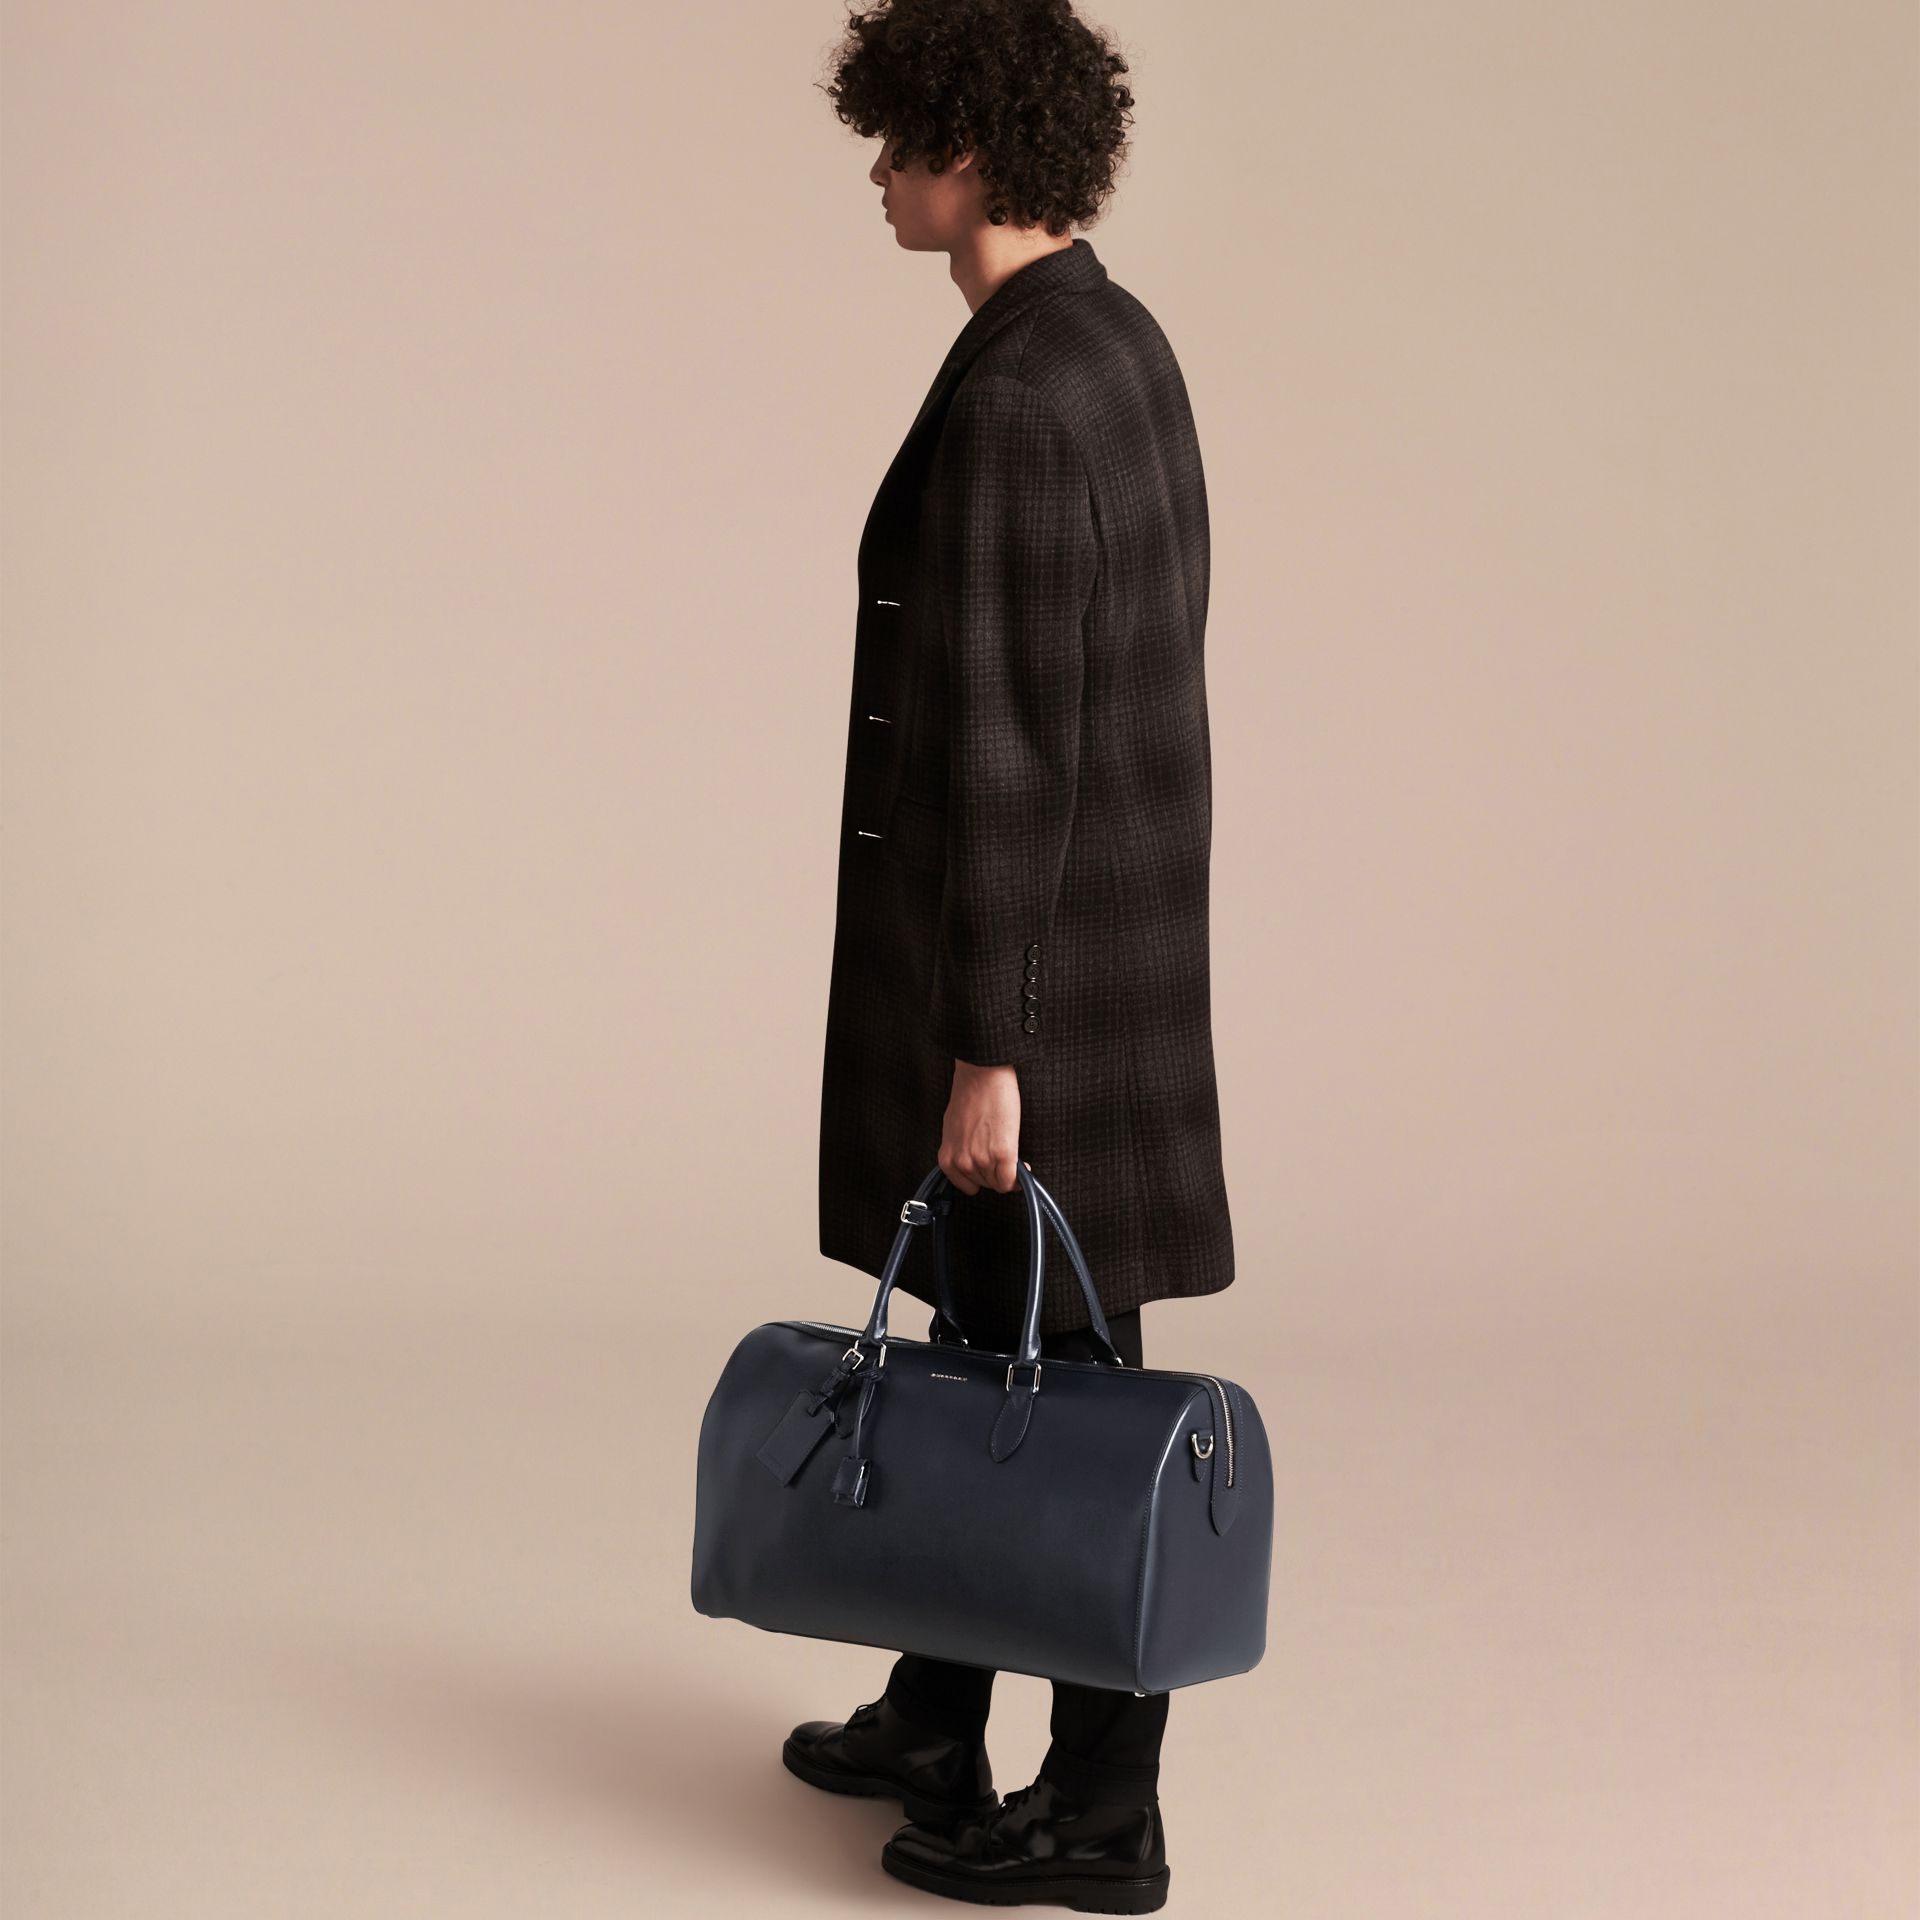 Dark navy London Leather Holdall Dark Navy - gallery image 3